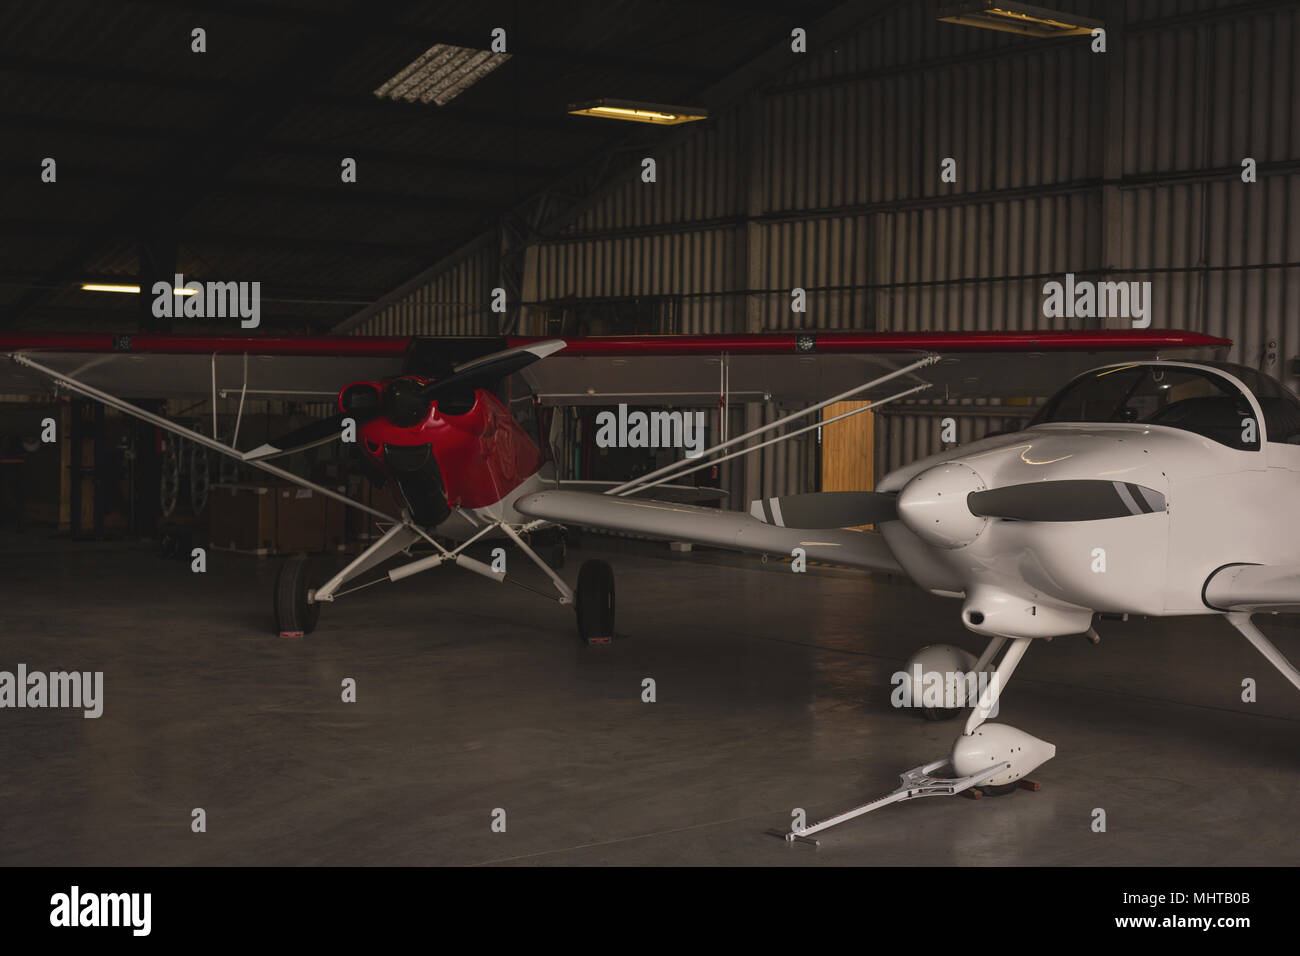 Two aircrafts parked in aerospace hangar - Stock Image